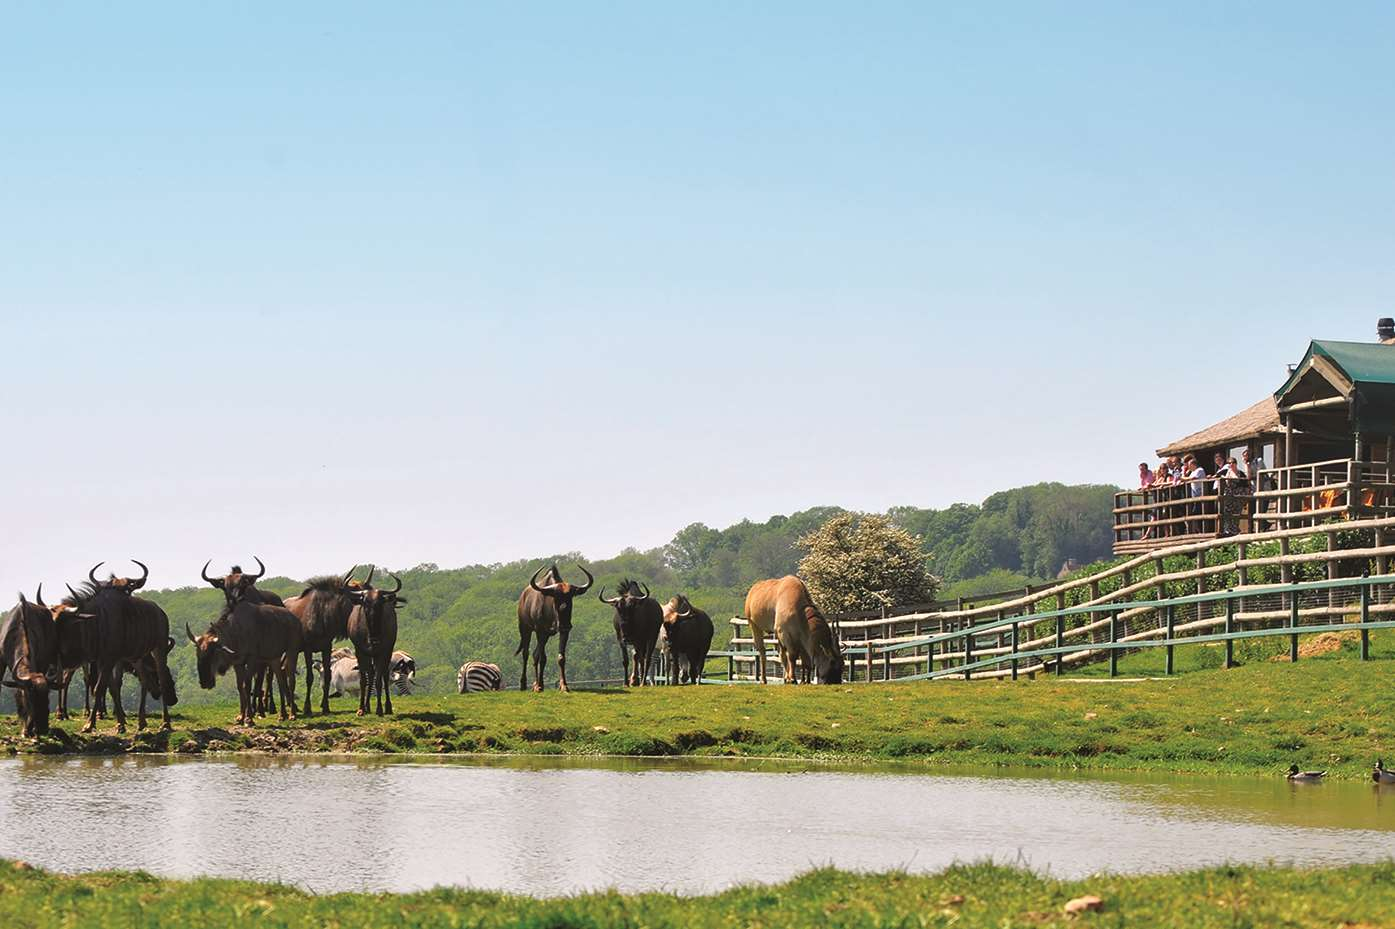 One of the watering holes at Port Lympne.